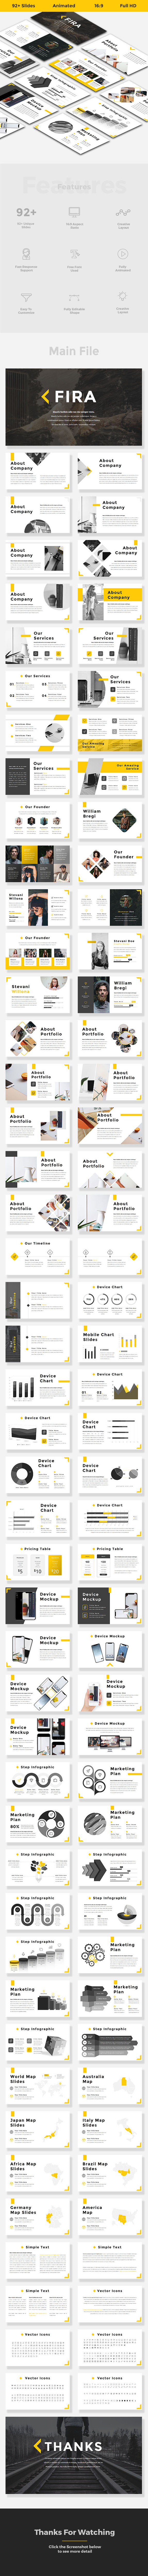 Fira - StartUp & Creative Google Slides Template - Google Slides Presentation Templates